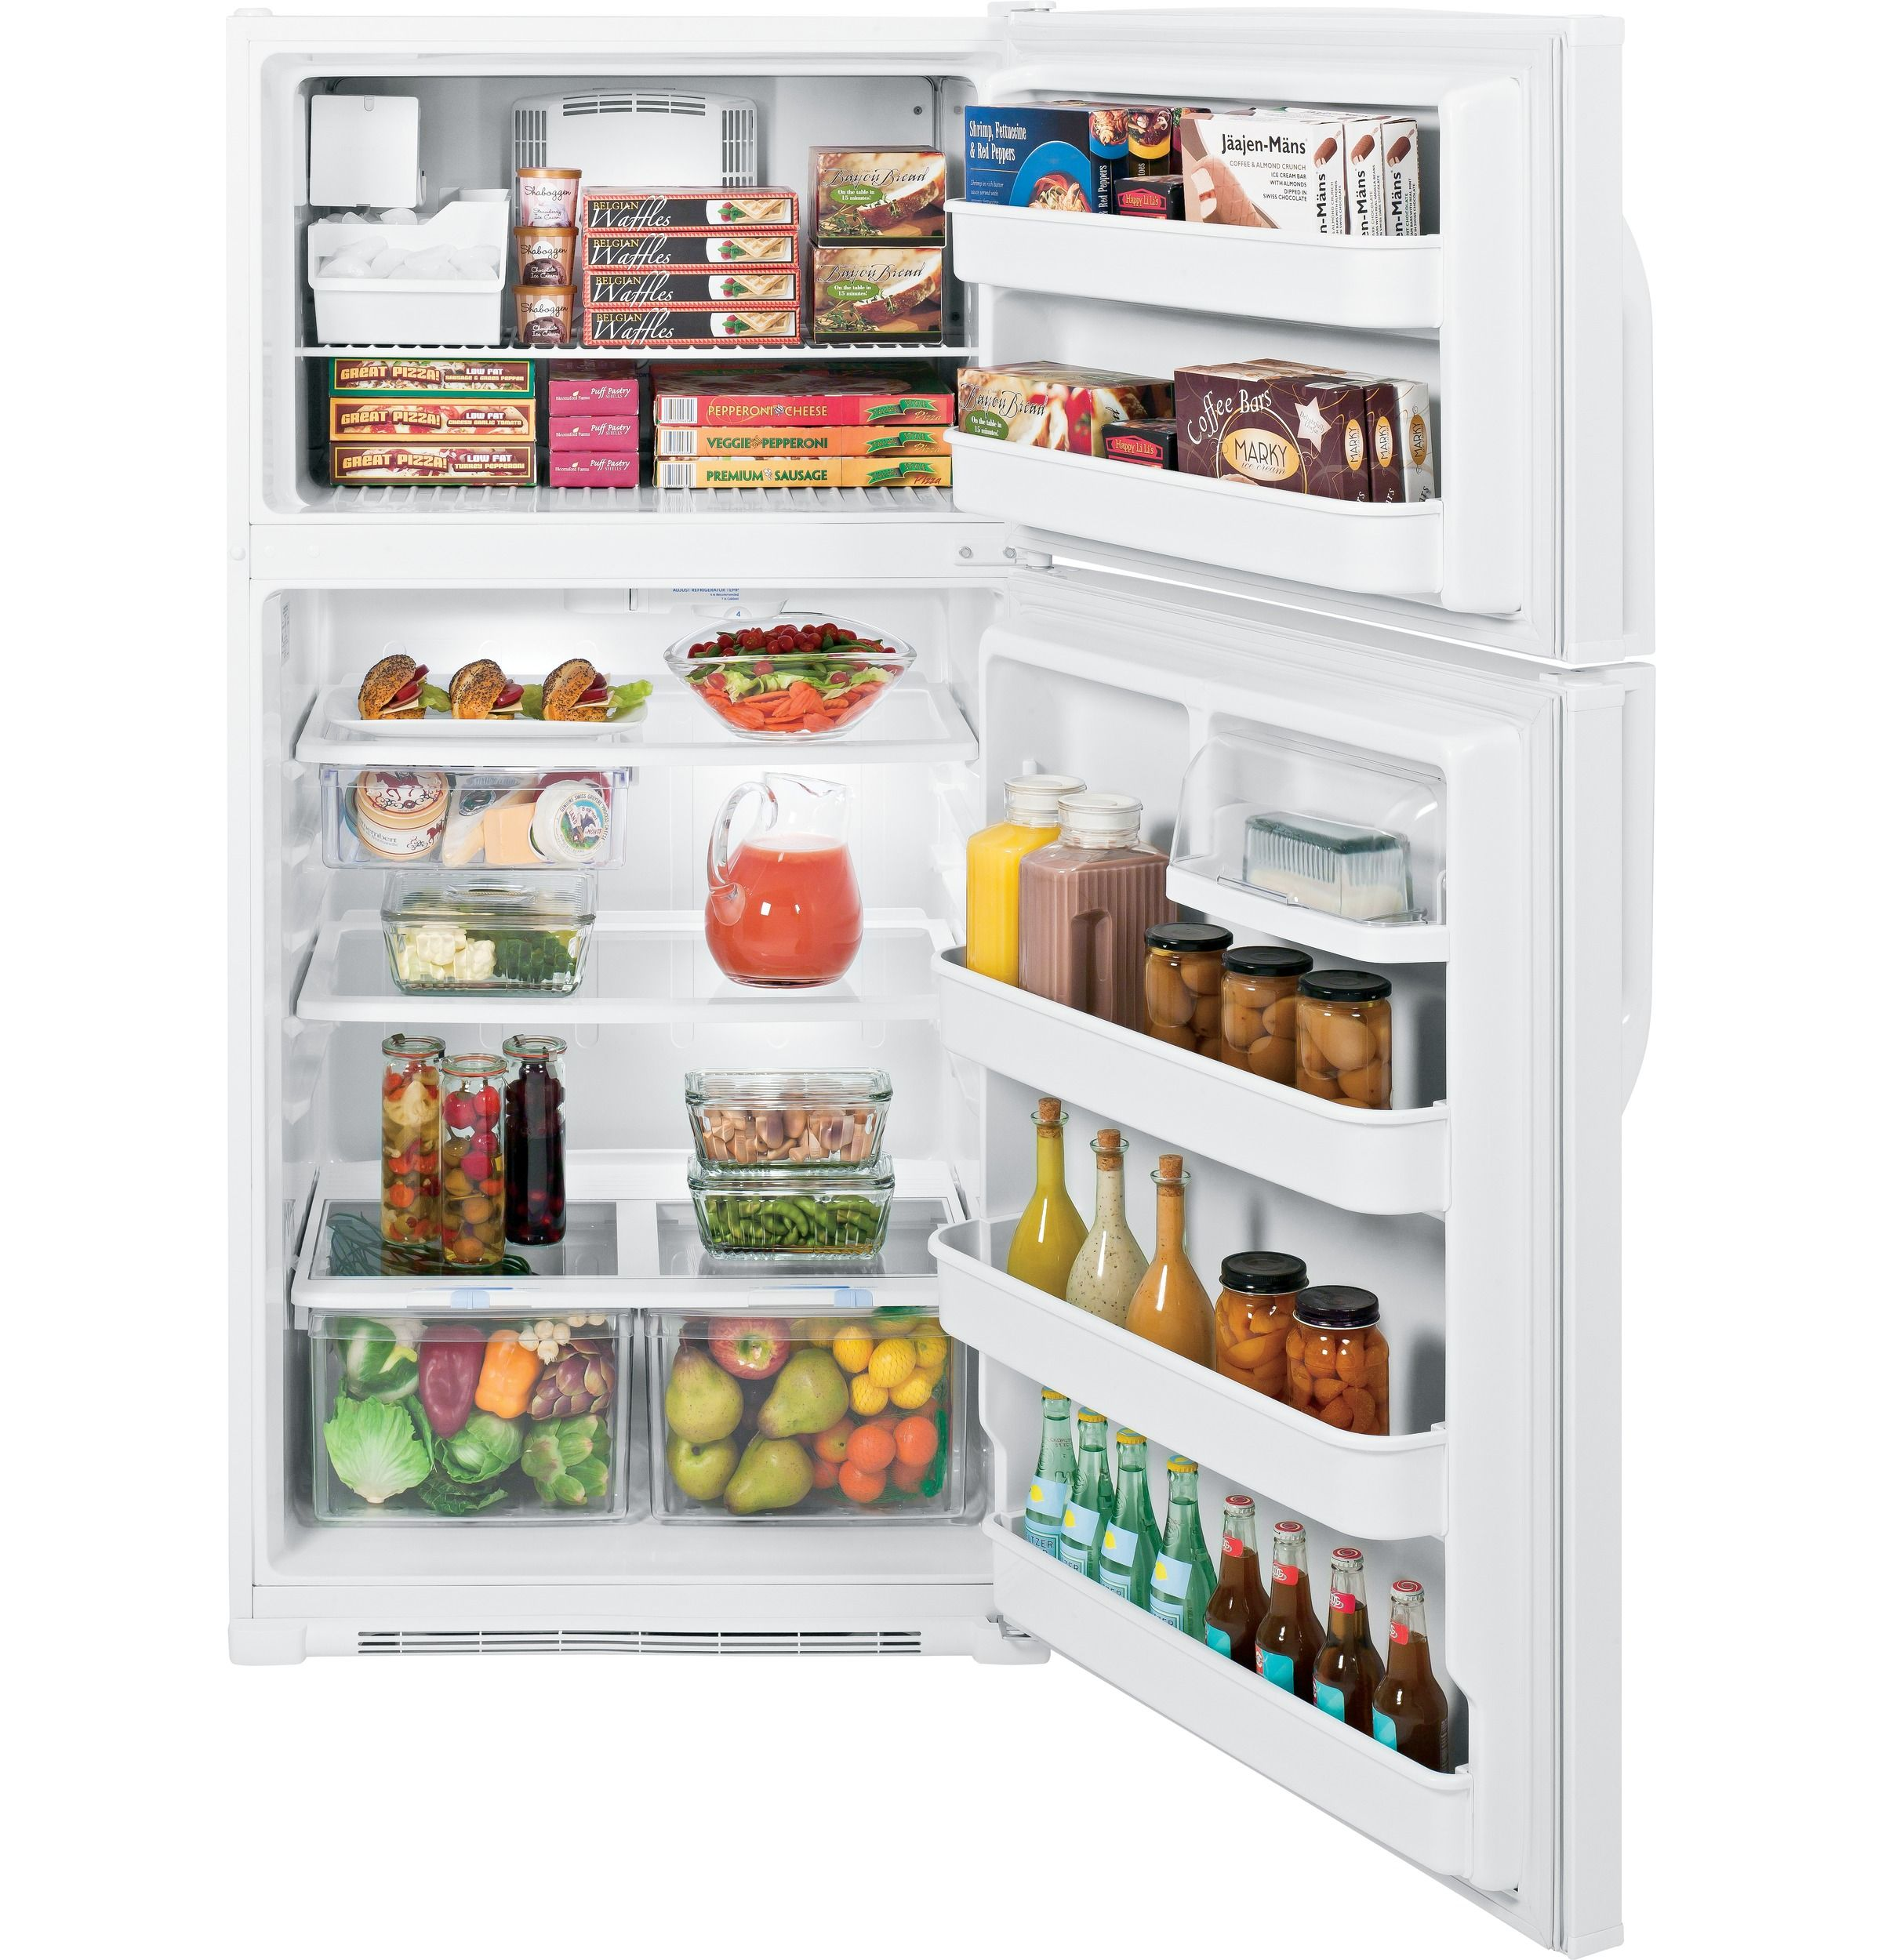 Ge 21 0 Cu Ft Top Freezer Refrigerator Gth21gceww Top Freezer Refrigerator Cool Kitchens Refrigerator